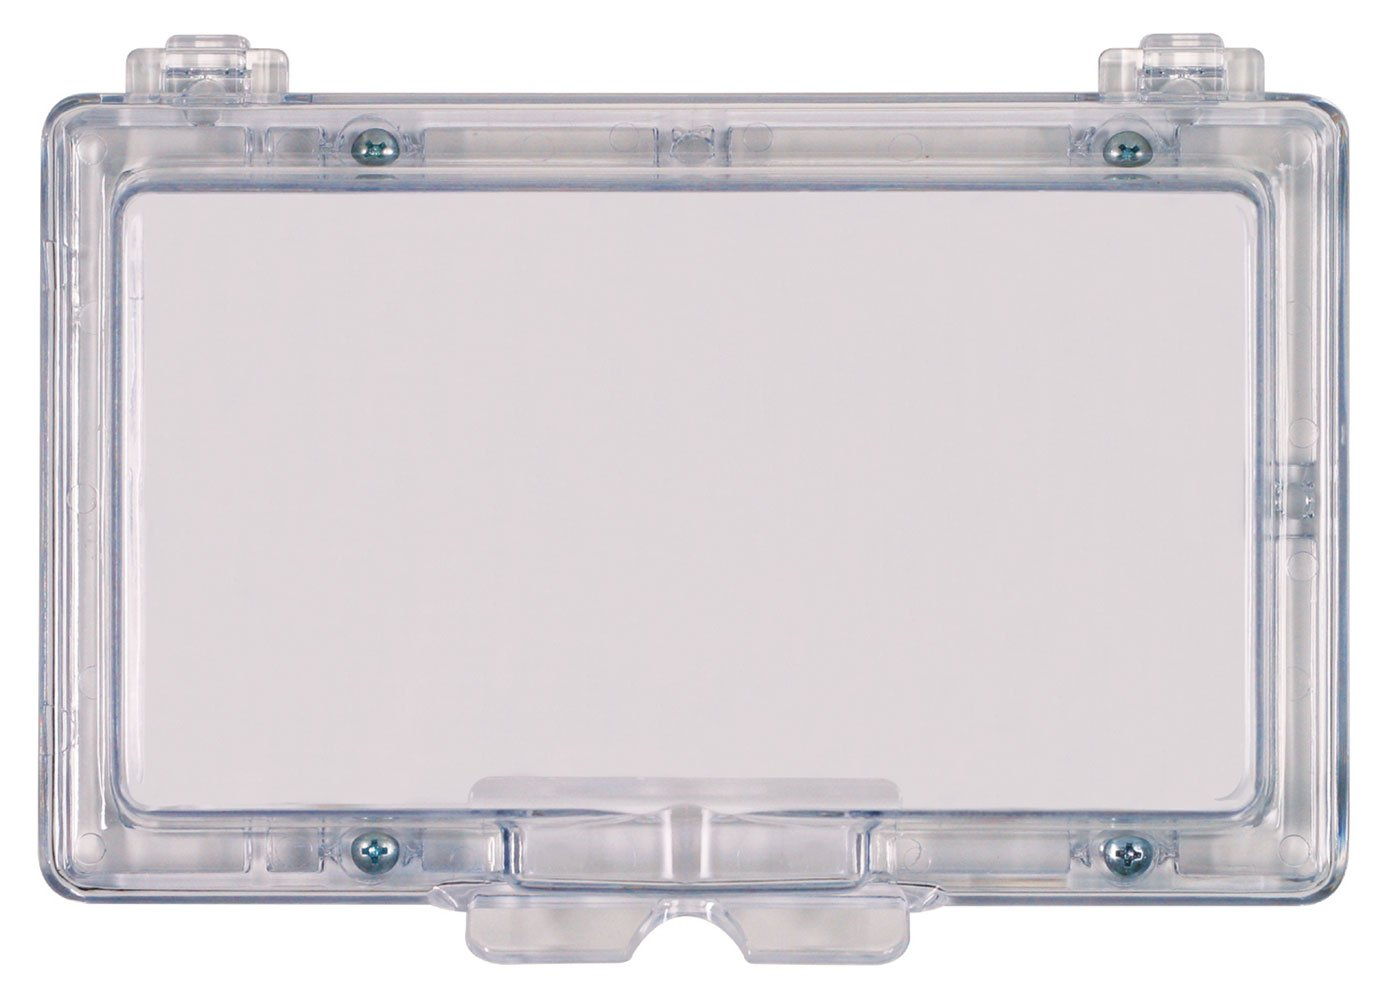 Safety Technology International, Inc. STI-6550 Widebody Keypad Protector without Lock - Flush Mounted Clear Polycarbonate Enclosure